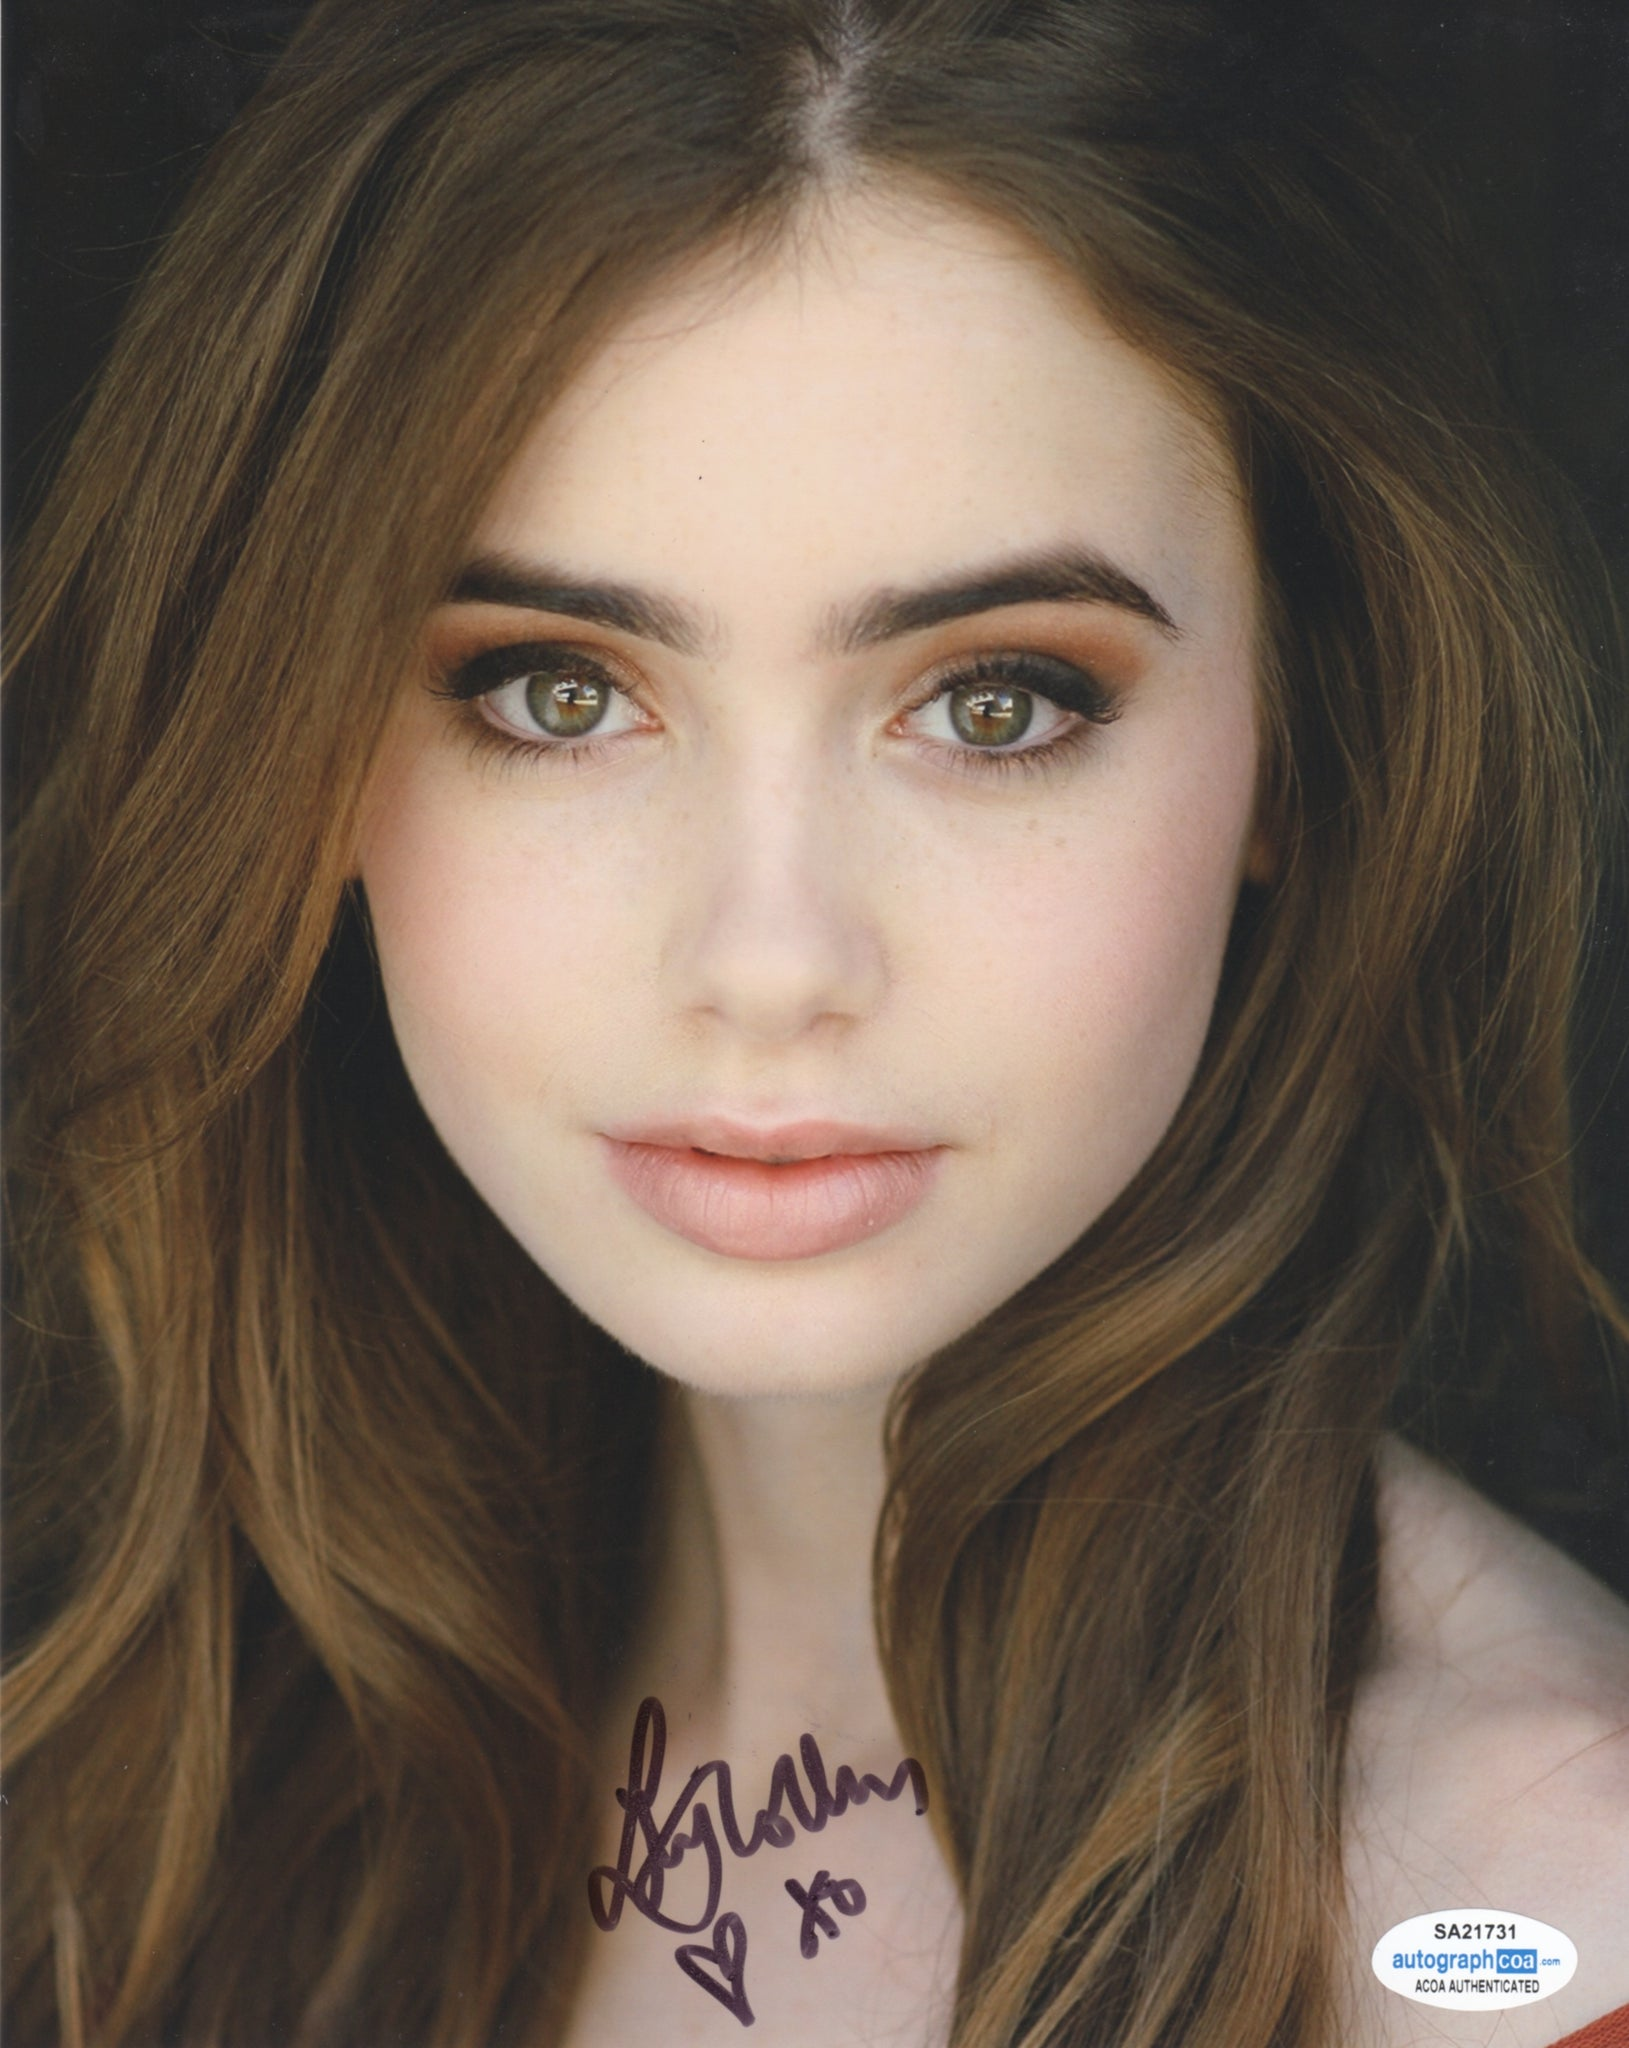 Lily Collins Sexy Signed Autograph 8x10 Photo ACOA #4 - Outlaw Hobbies Authentic Autographs